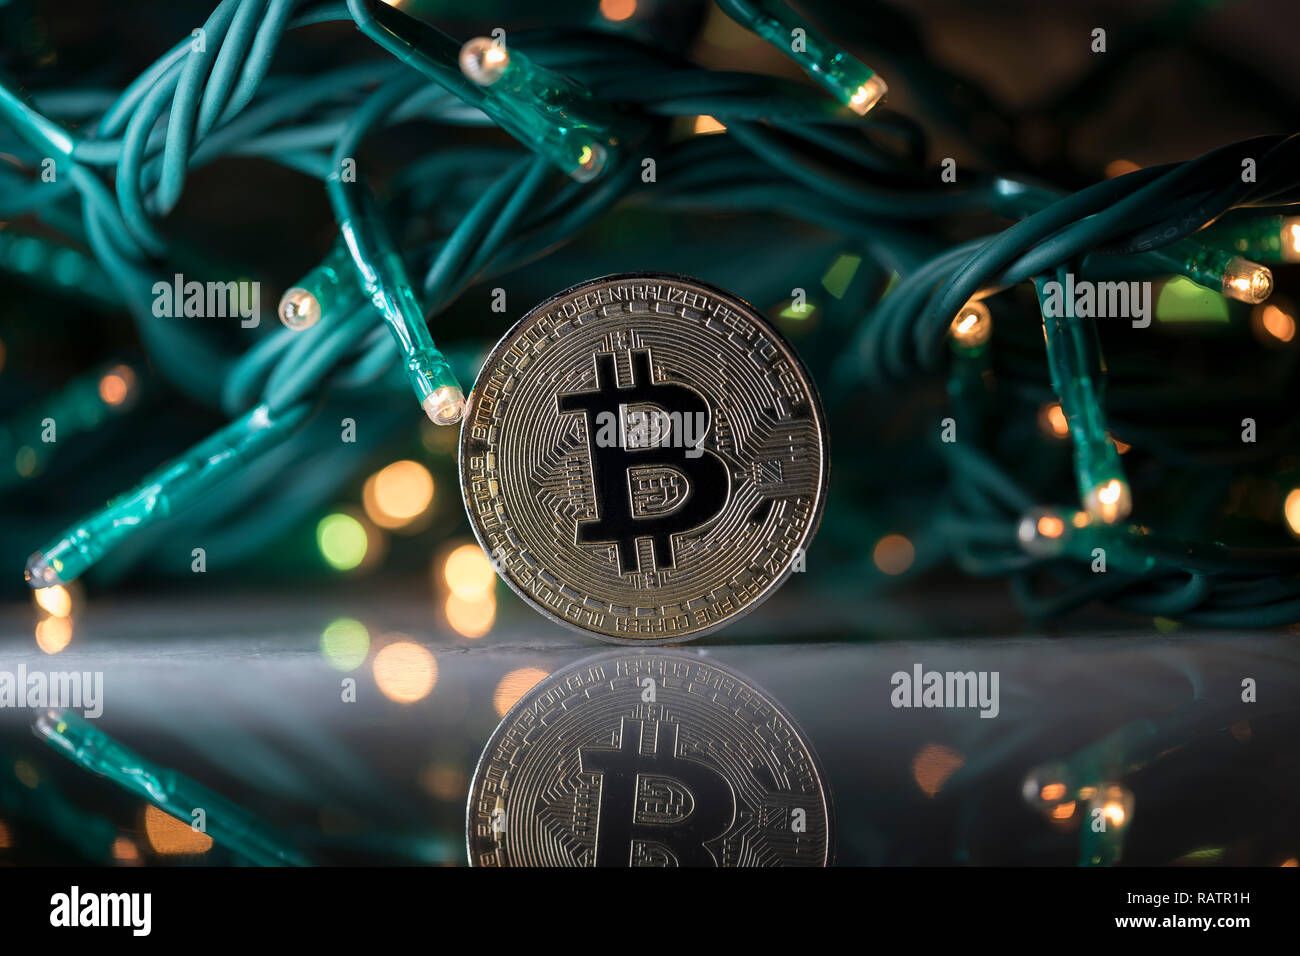 Bitcoin cryptocurrency physical coin placed next to Christmas lights - Stock Image